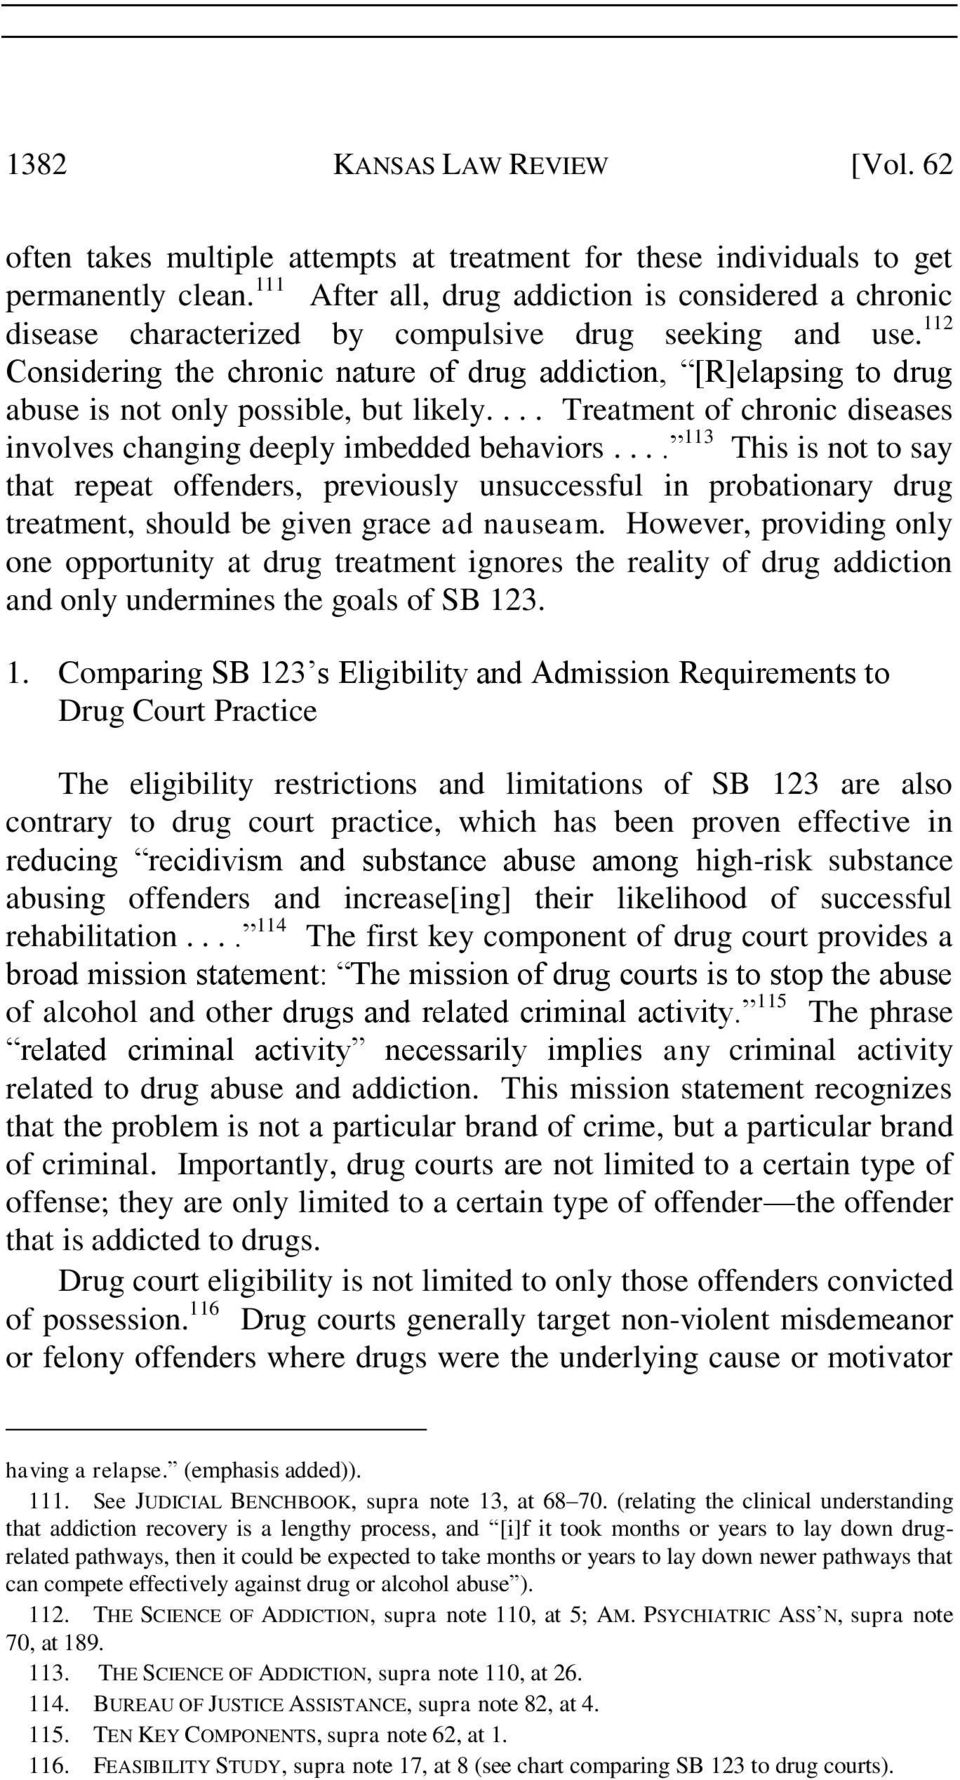 112 Considering the chronic nature of drug addiction, [R]elapsing to drug abuse is not only possible, but likely.... Treatment of chronic diseases involves changing deeply imbedded behaviors.